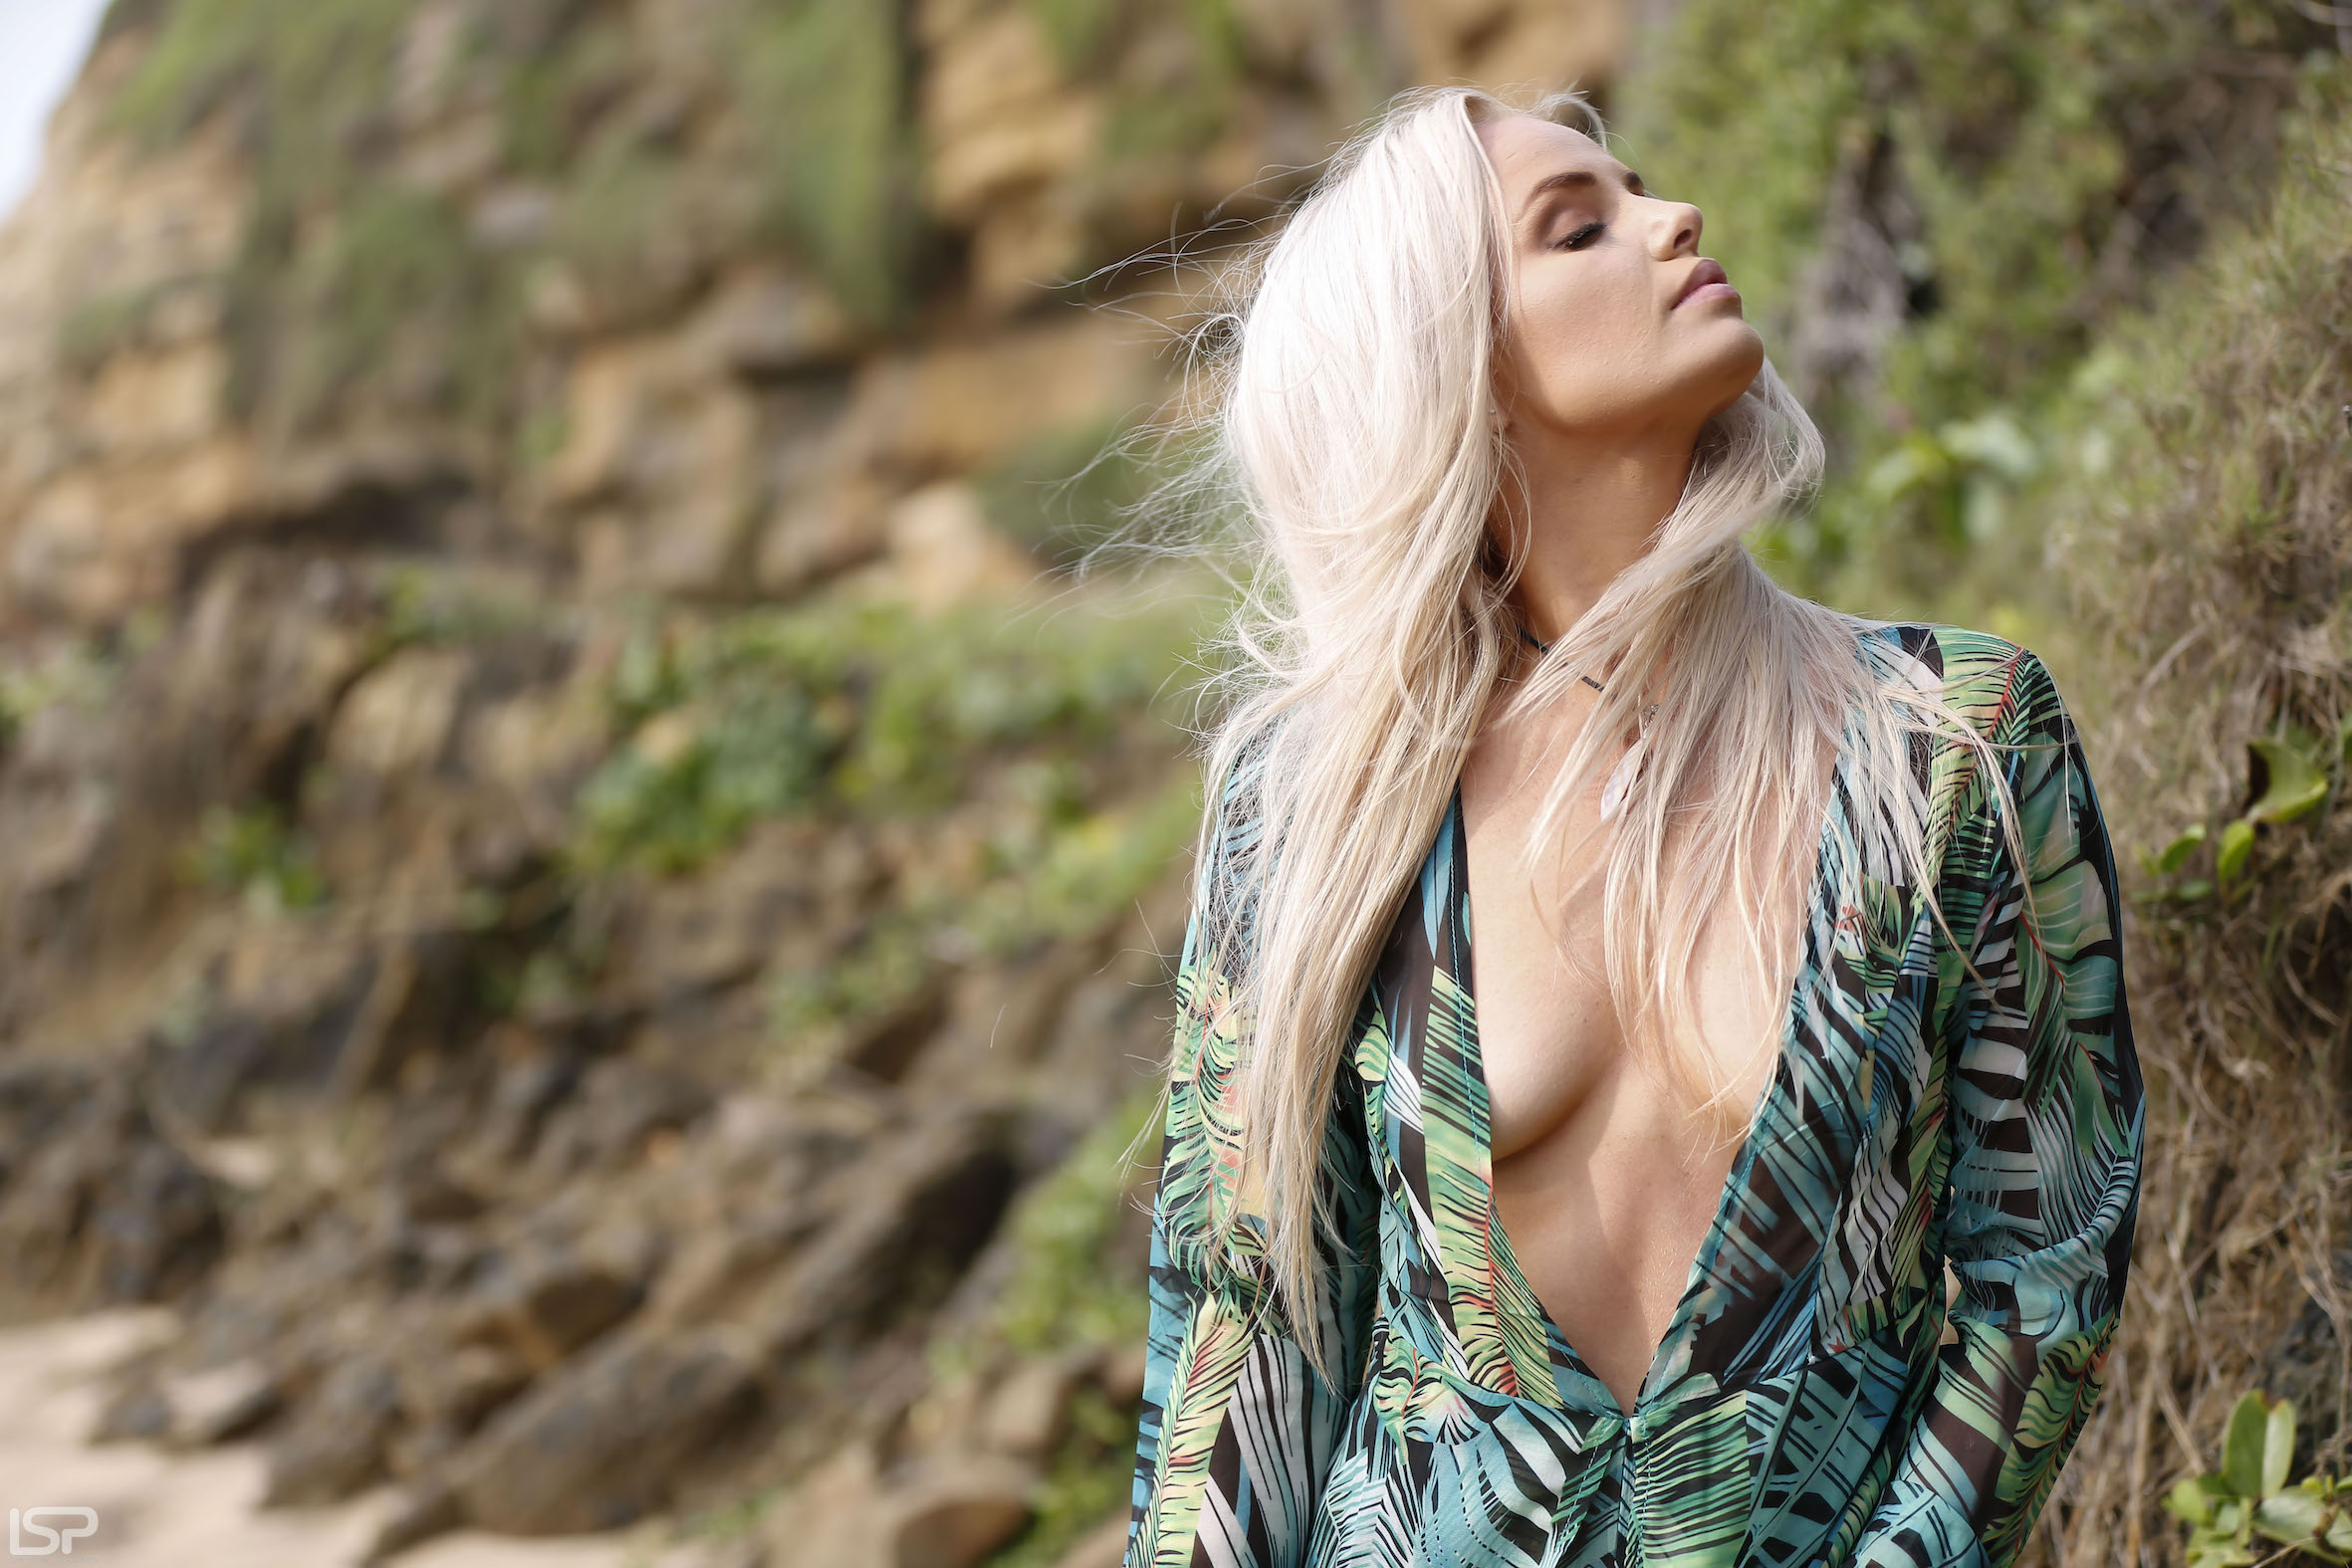 Our SA Babes feature with Amber Elizabeth